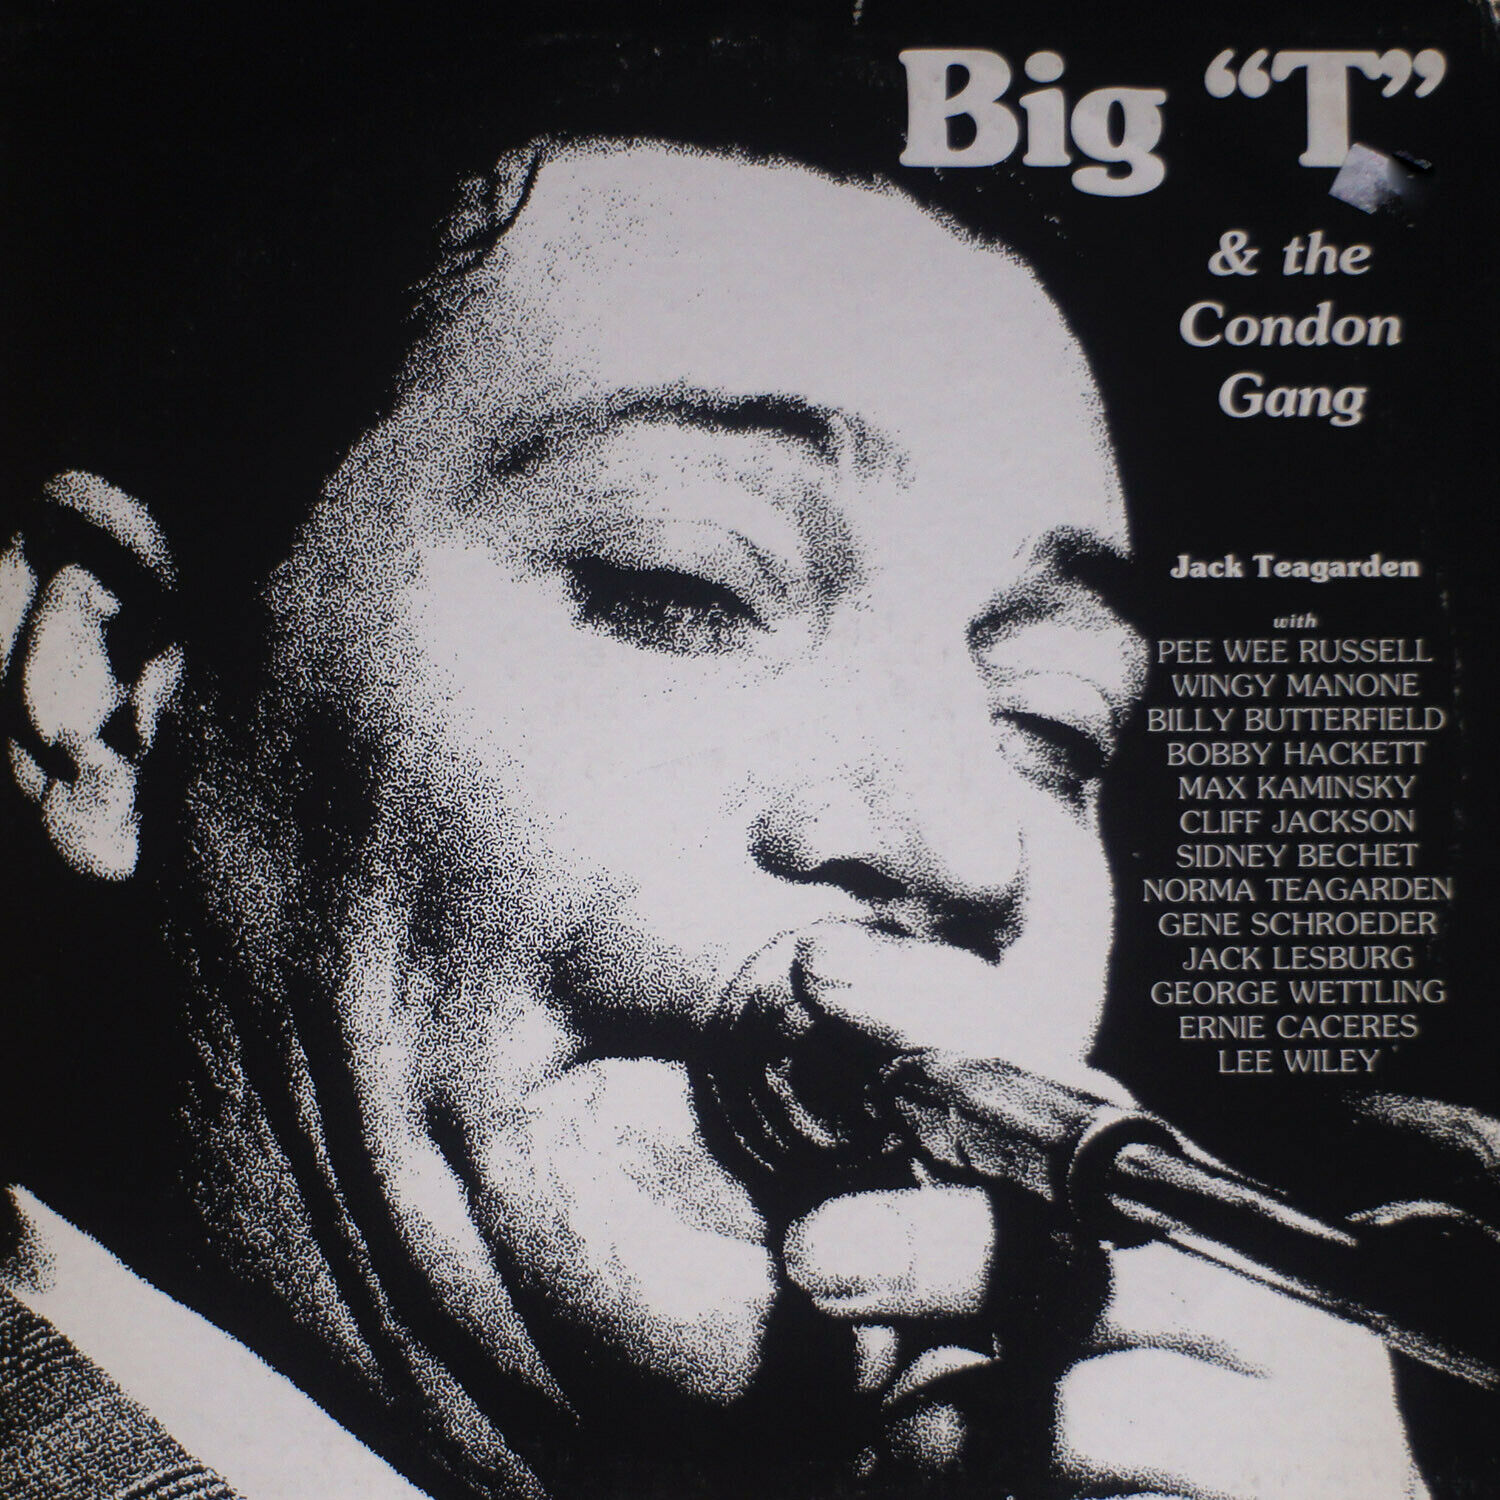 JACK TEAGARDEN / Big T And The Condon Gang NM/EX 0452 LP Vinyl - $13.00